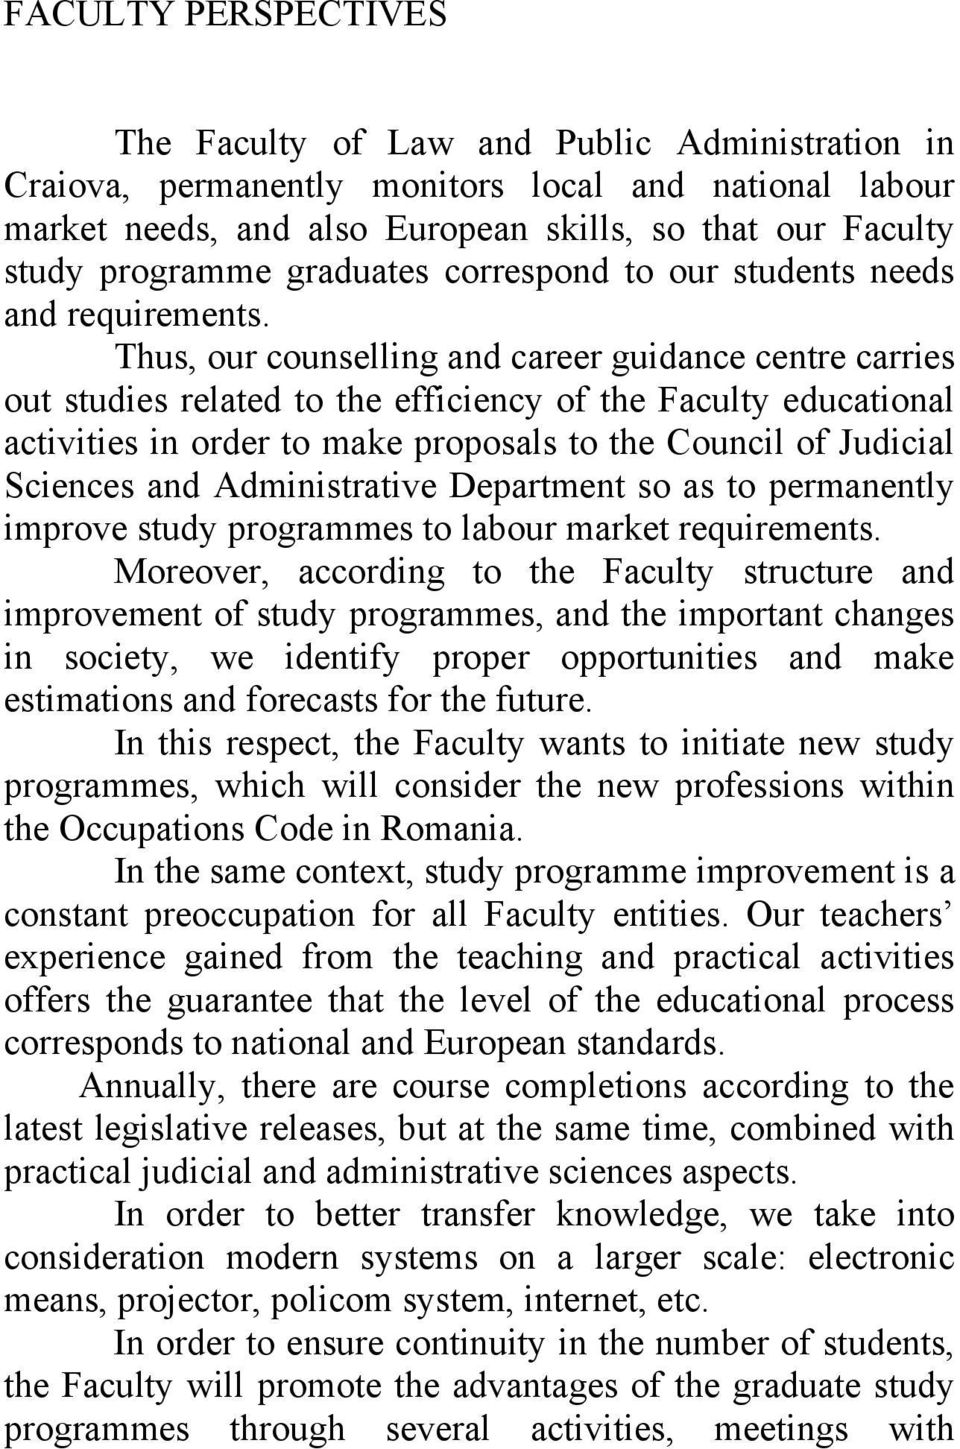 Thus, our counselling and career guidance centre carries out studies related to the efficiency of the Faculty educational activities in order to make proposals to the Council of Judicial Sciences and